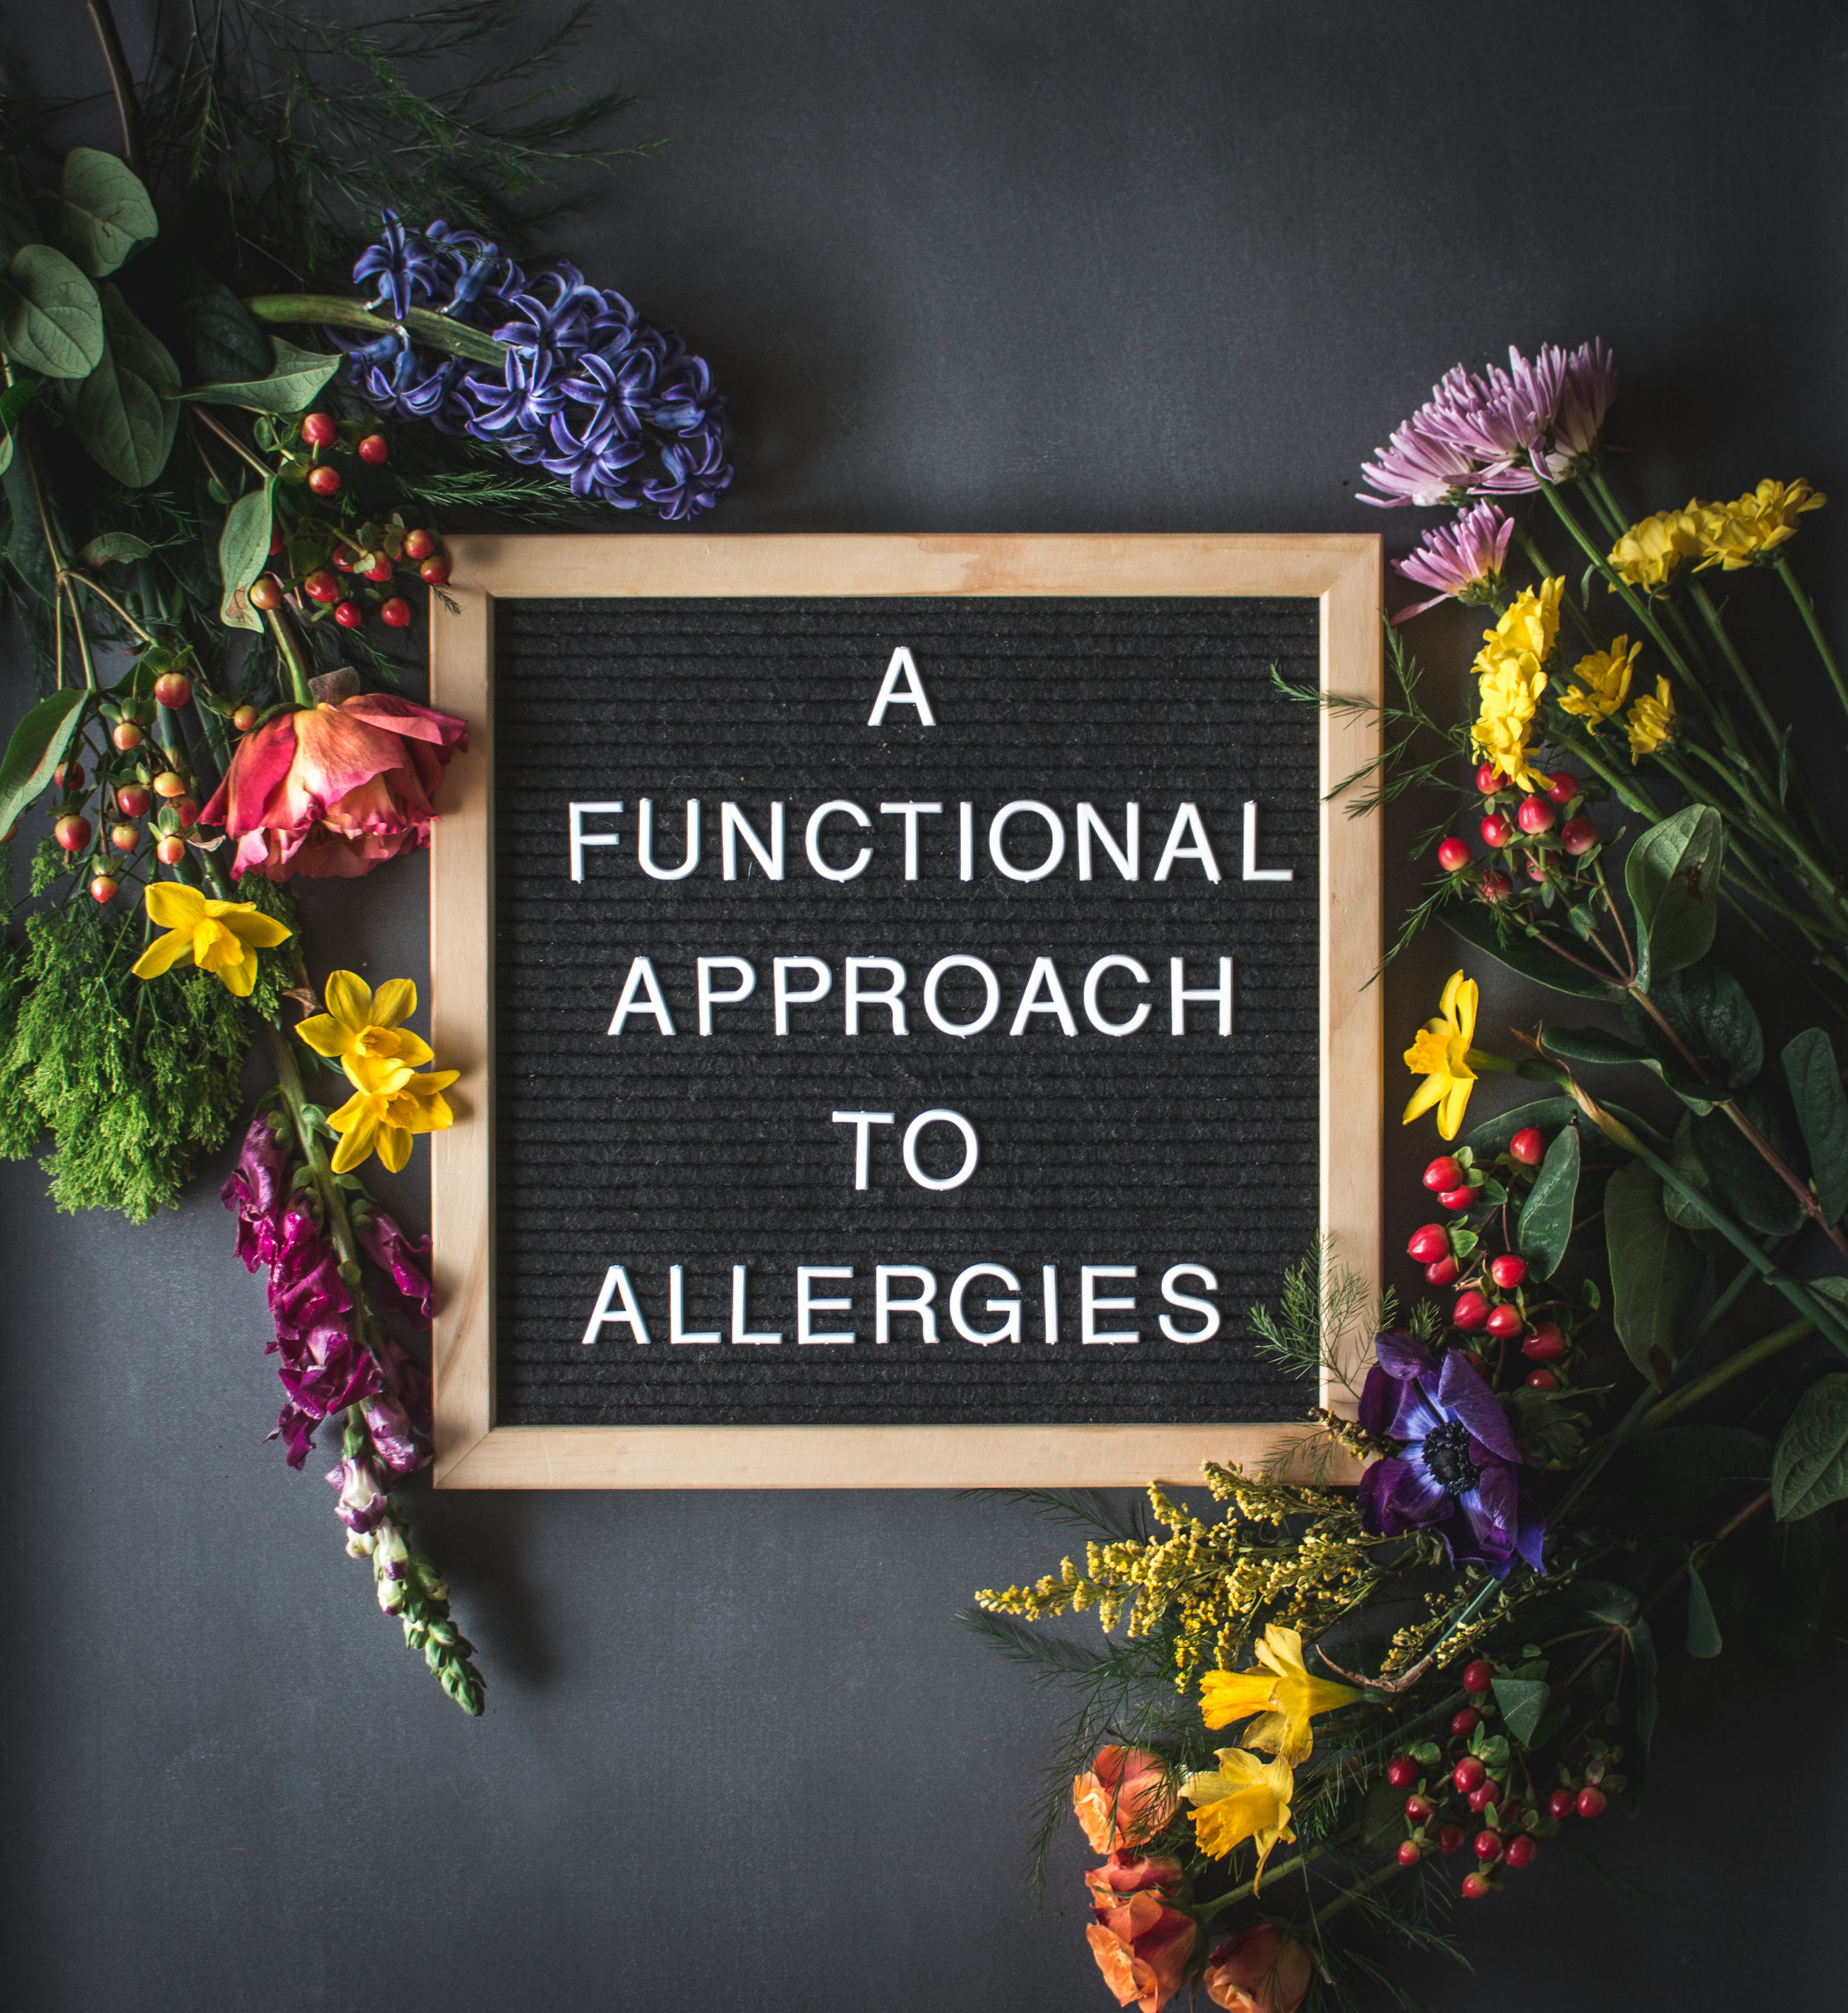 a functional approach to allergies (1 of 1).jpg